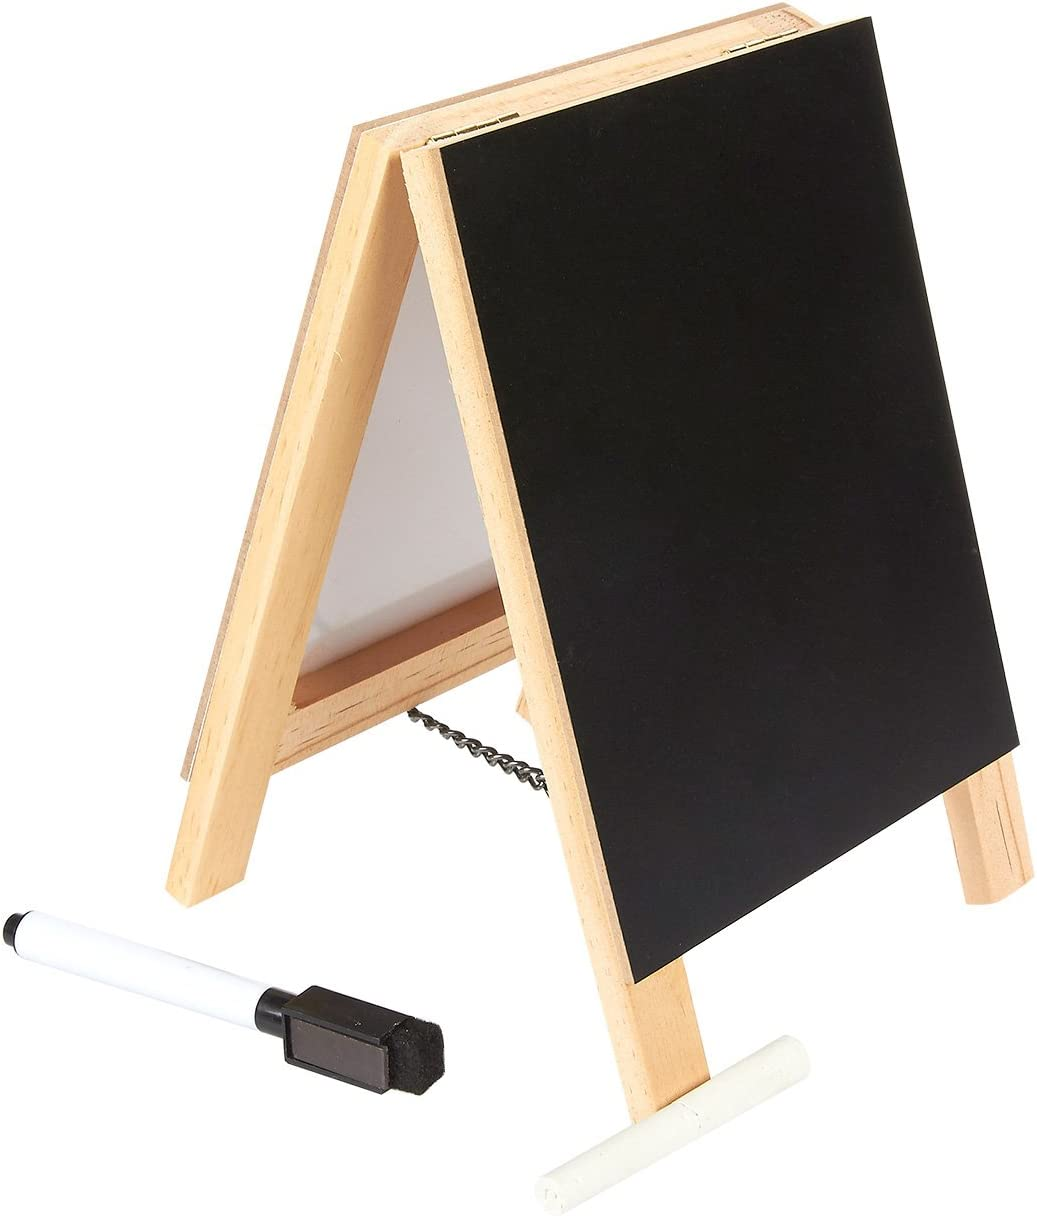 Juvale Double Sided Chalkboard Stand and Dry Erase Sign - Dual Wooden Tabletop Easel and White Board Stand for Kitchen Counter, Home Office, Cafe, 5.5 x 7.87 x 1 Inches